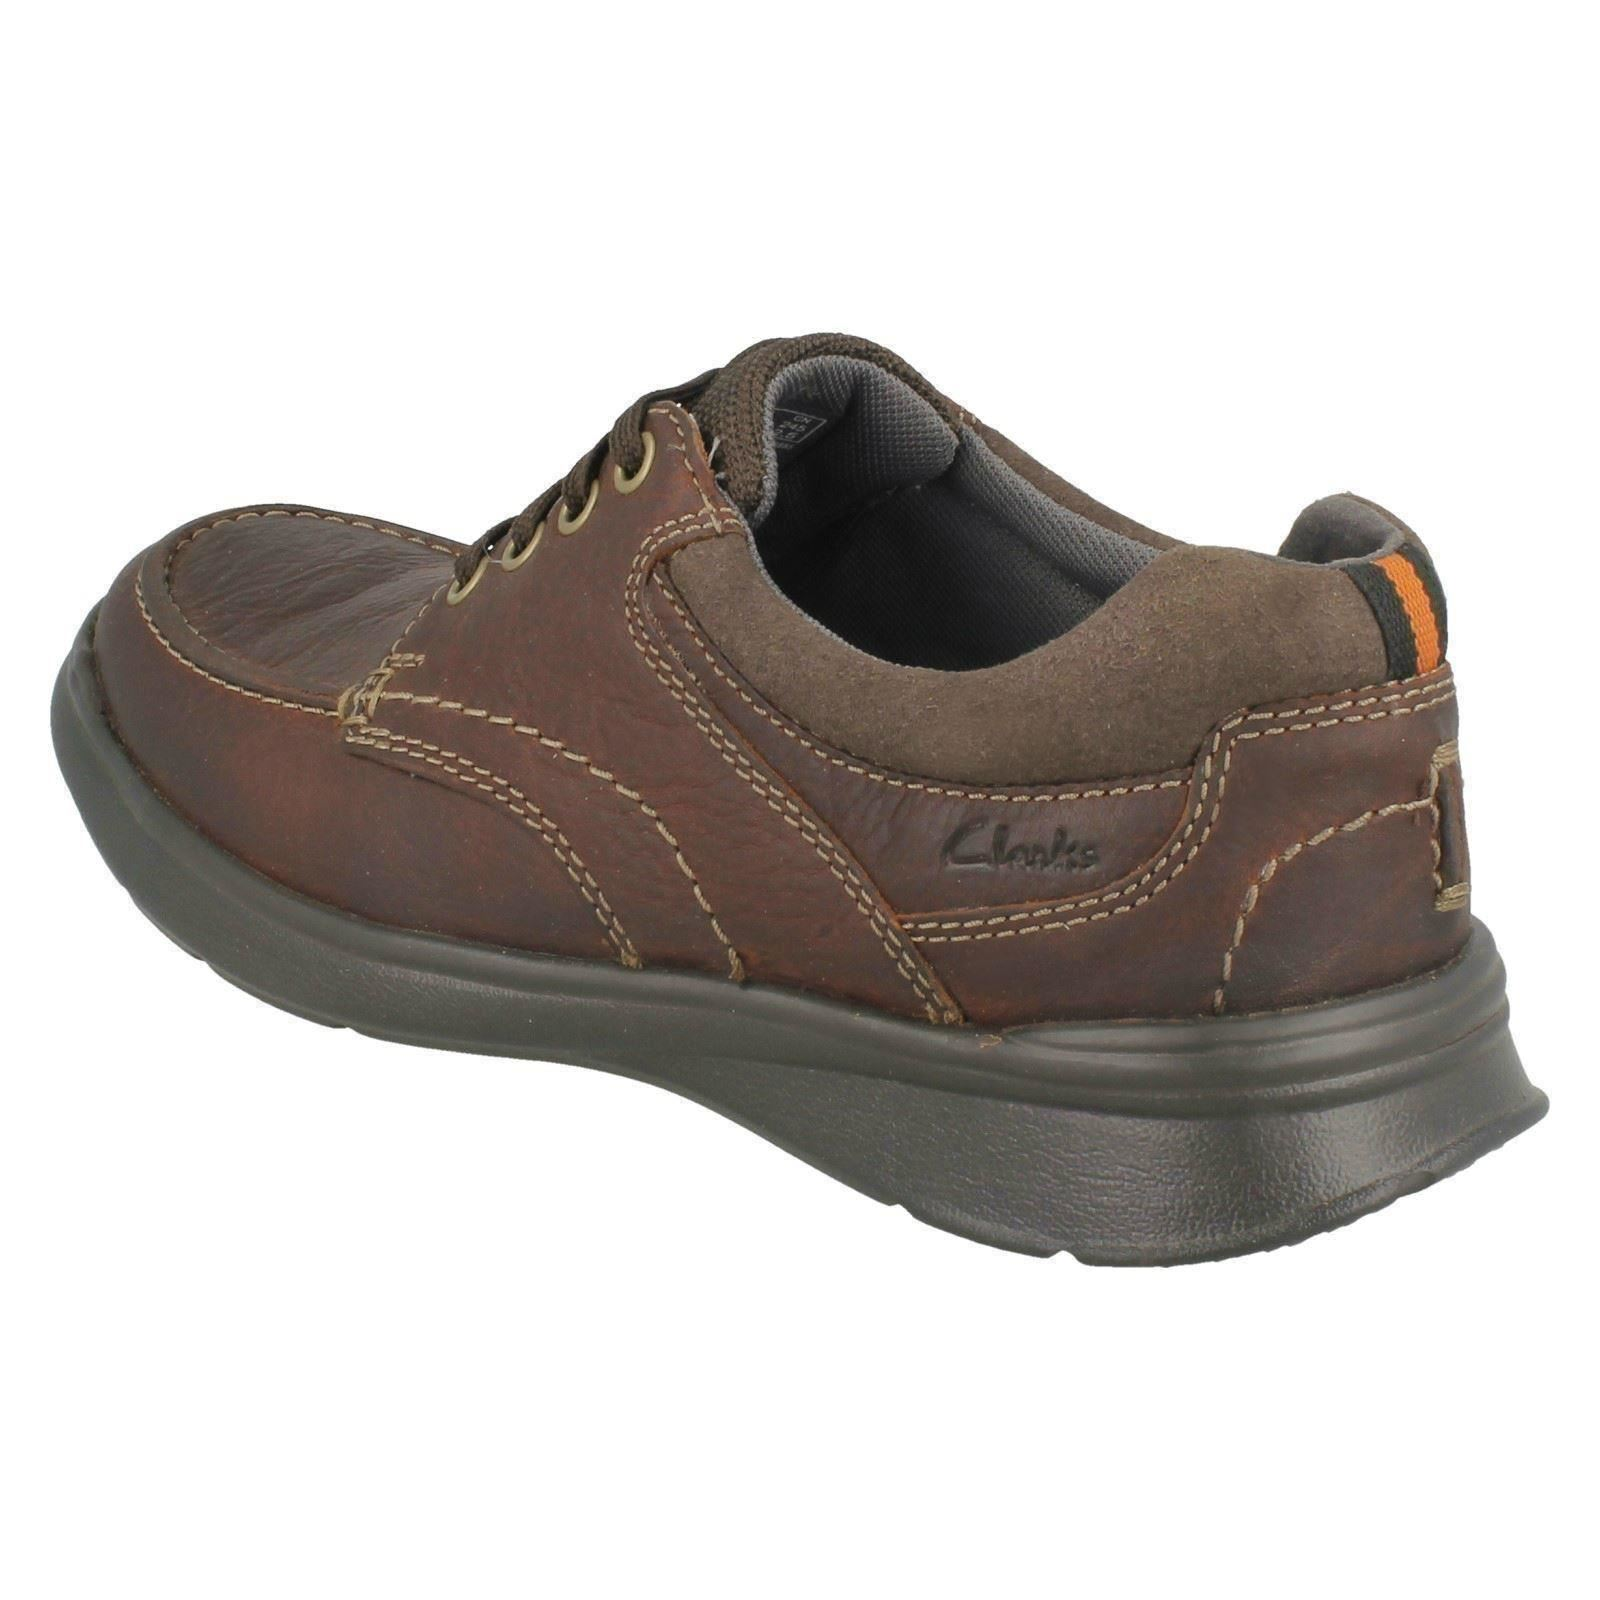 06869814e9d9 Mens Cotrell Edge Leather Lace up Shoes by Clarks Brown UK 7 for sale  online